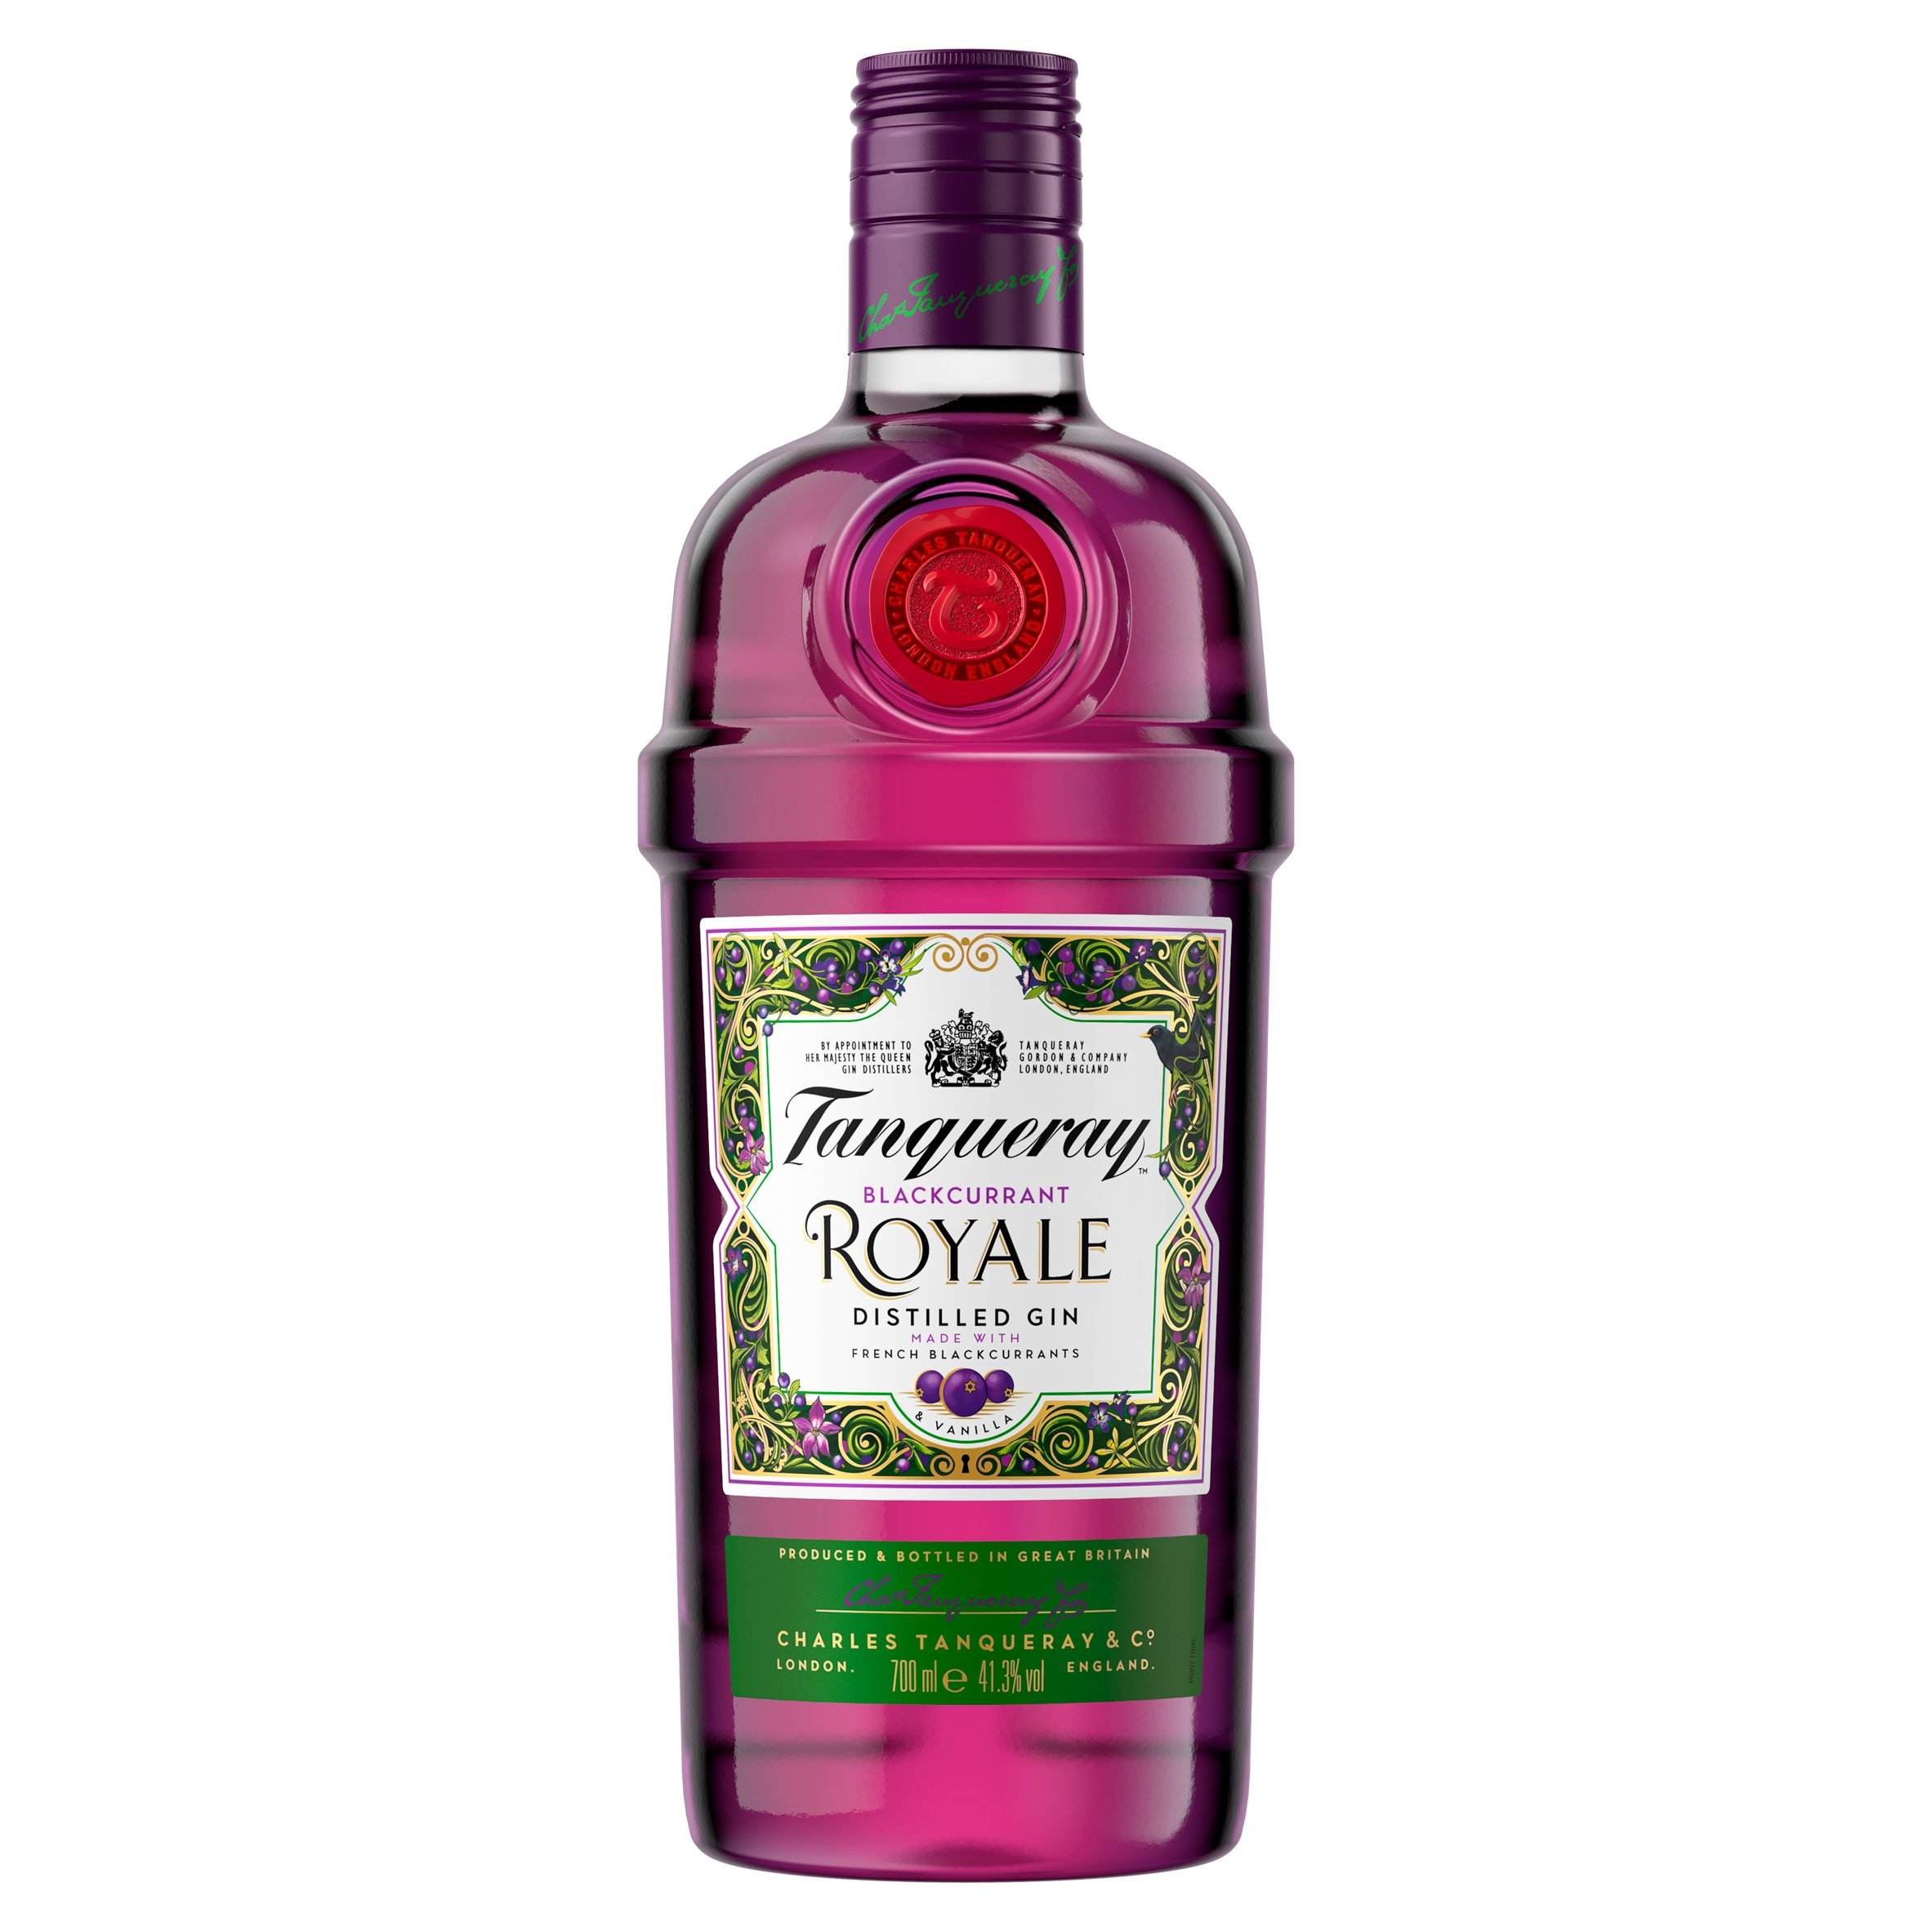 Tanqueray Blackcurrant Royale Distilled Gin 700Ml